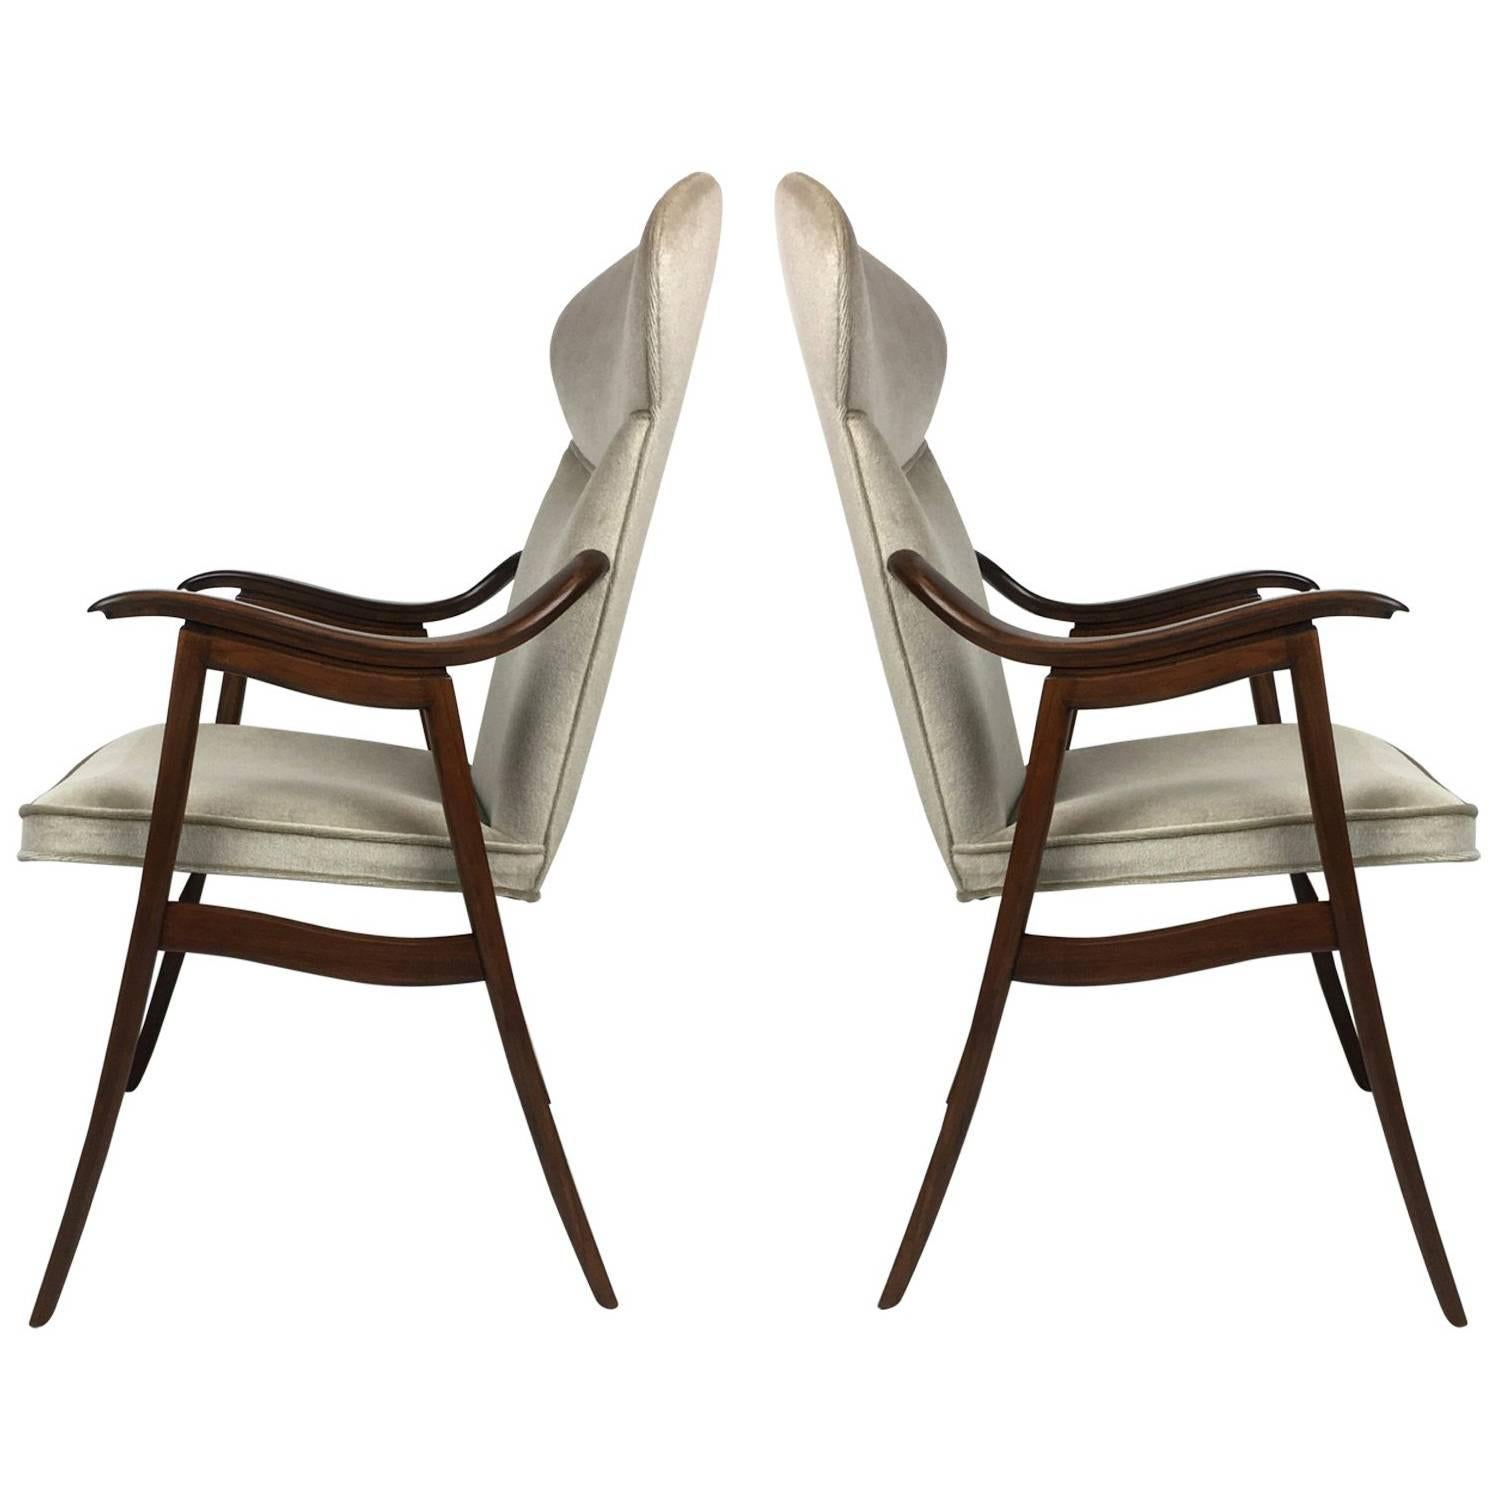 Set of Four Walnut Dining Chairs Attributed to Edward Wormley for Dunbar